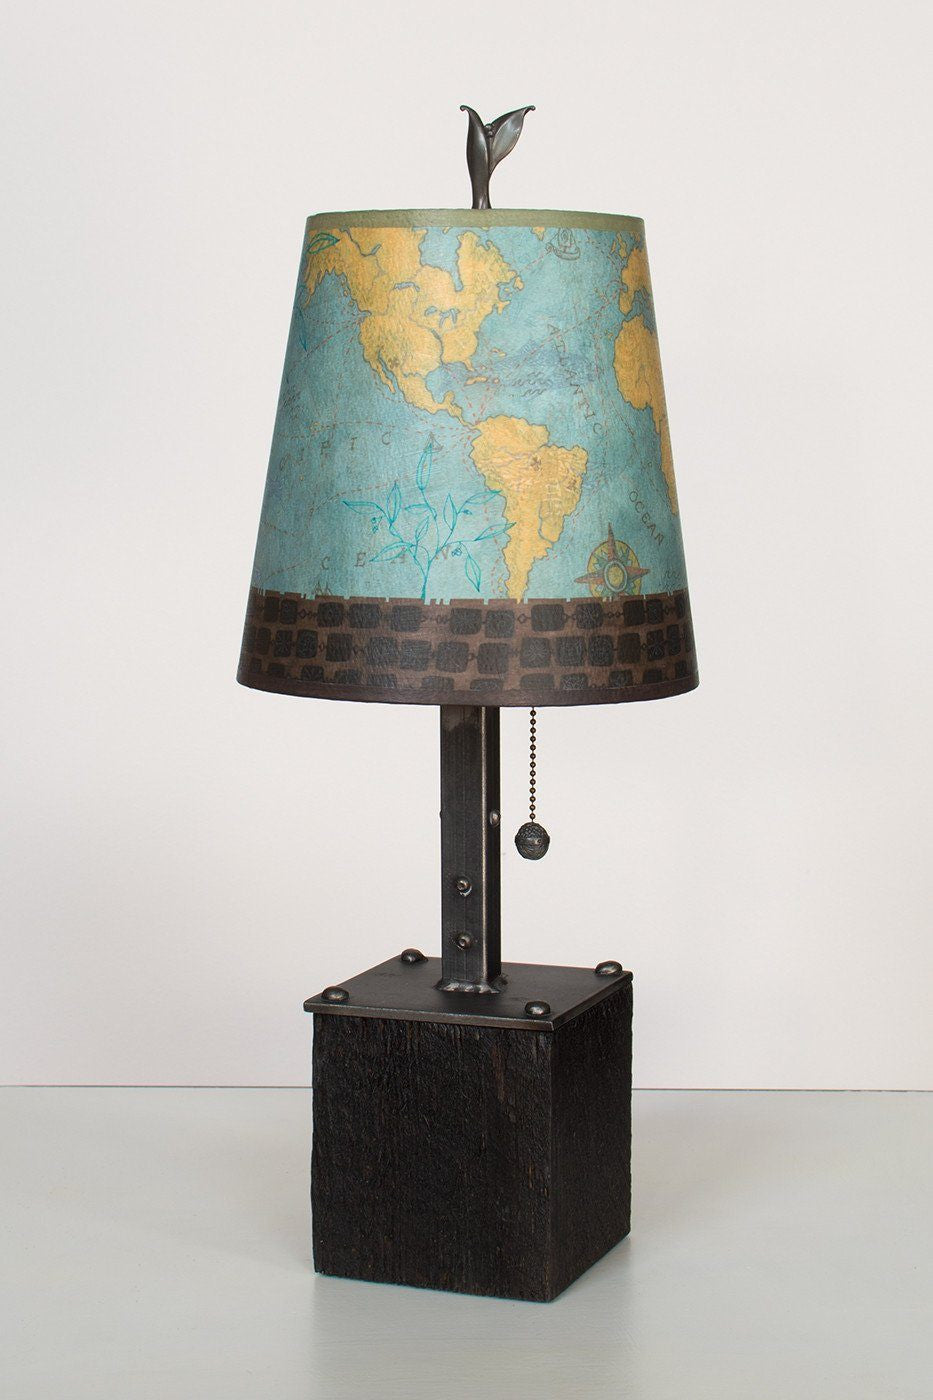 Steel Table Lamp on Reclaimed Wood with Small Drum Shade in Map Lit